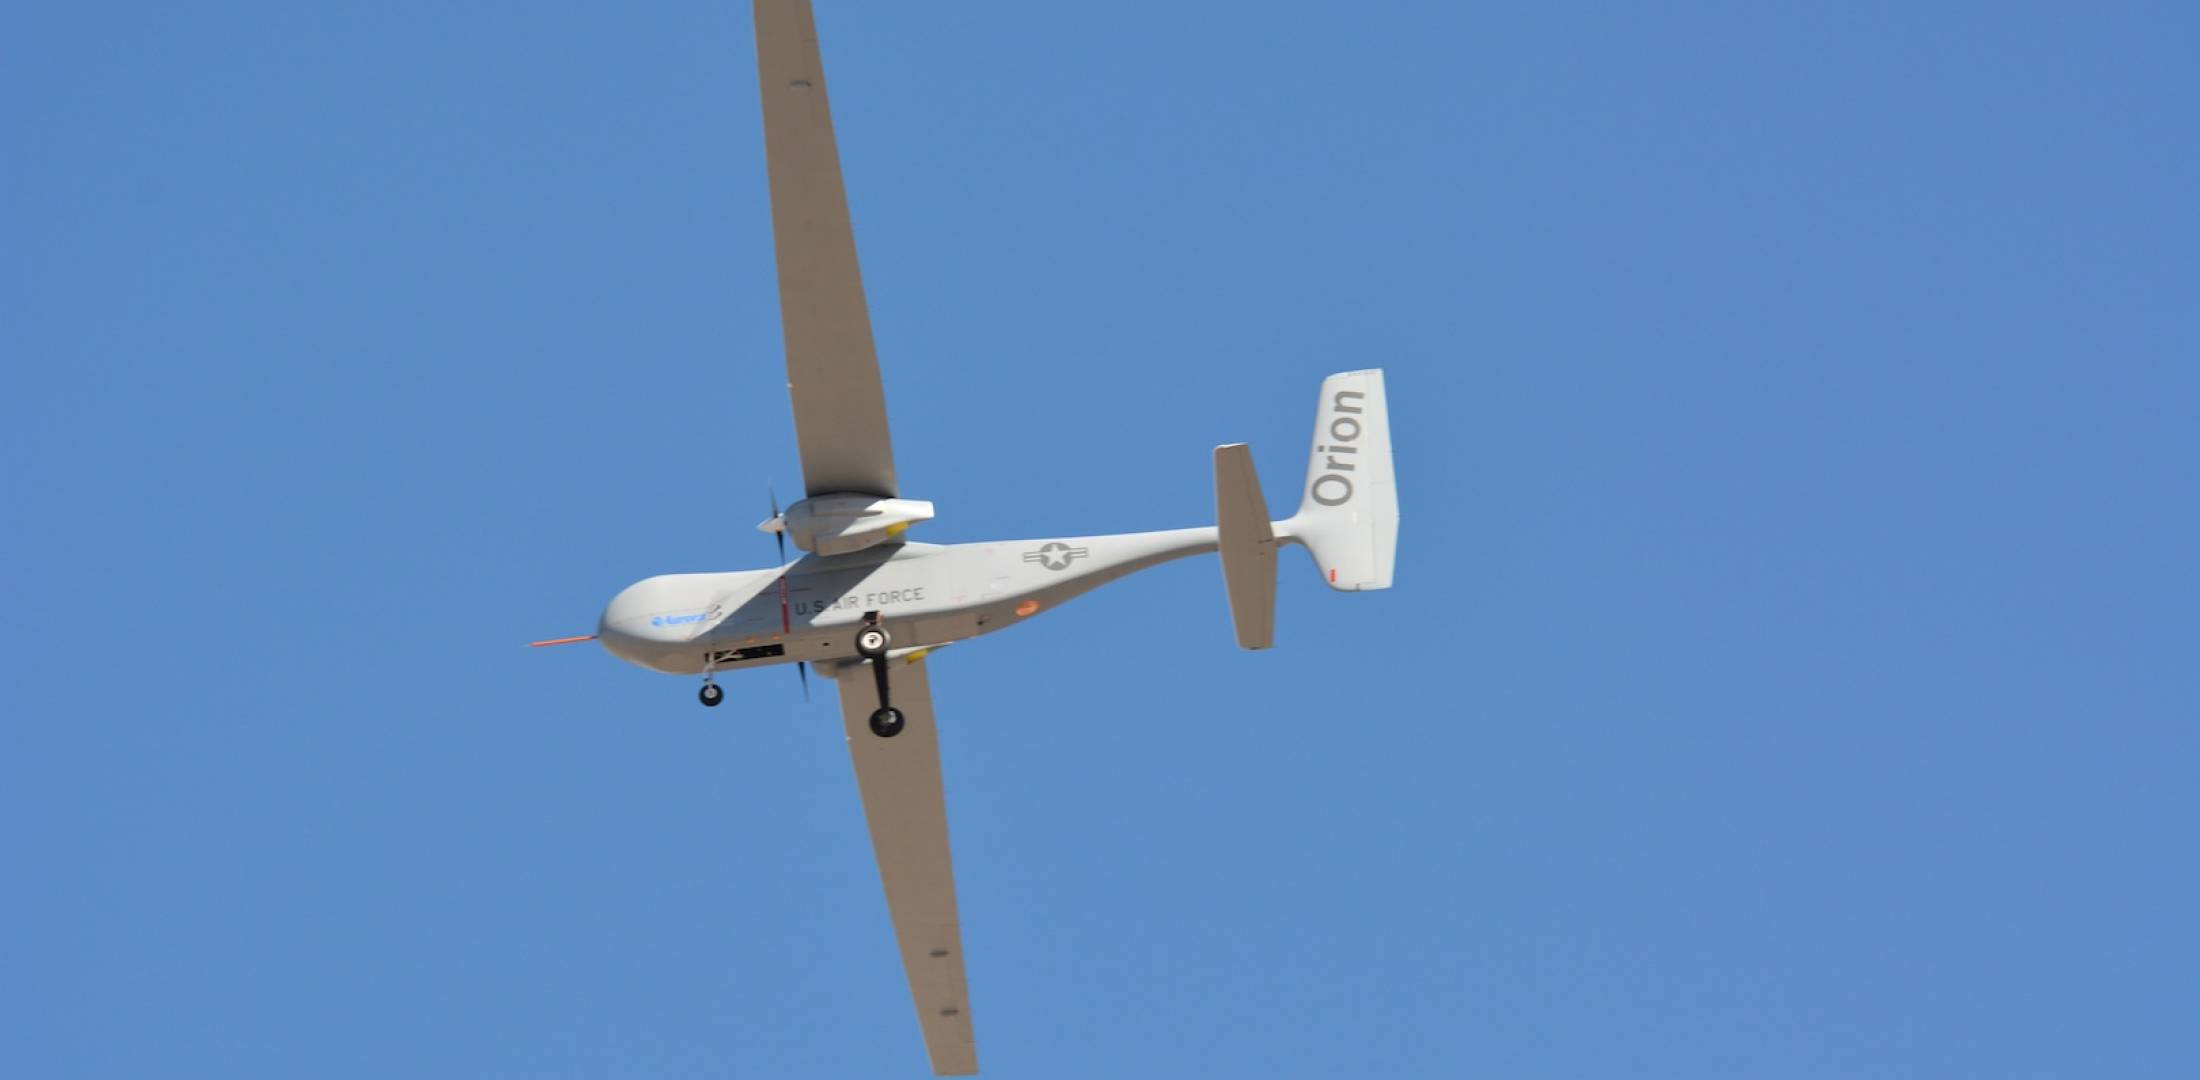 Aurora Flight Sciences' Orion unmanned aircraft system